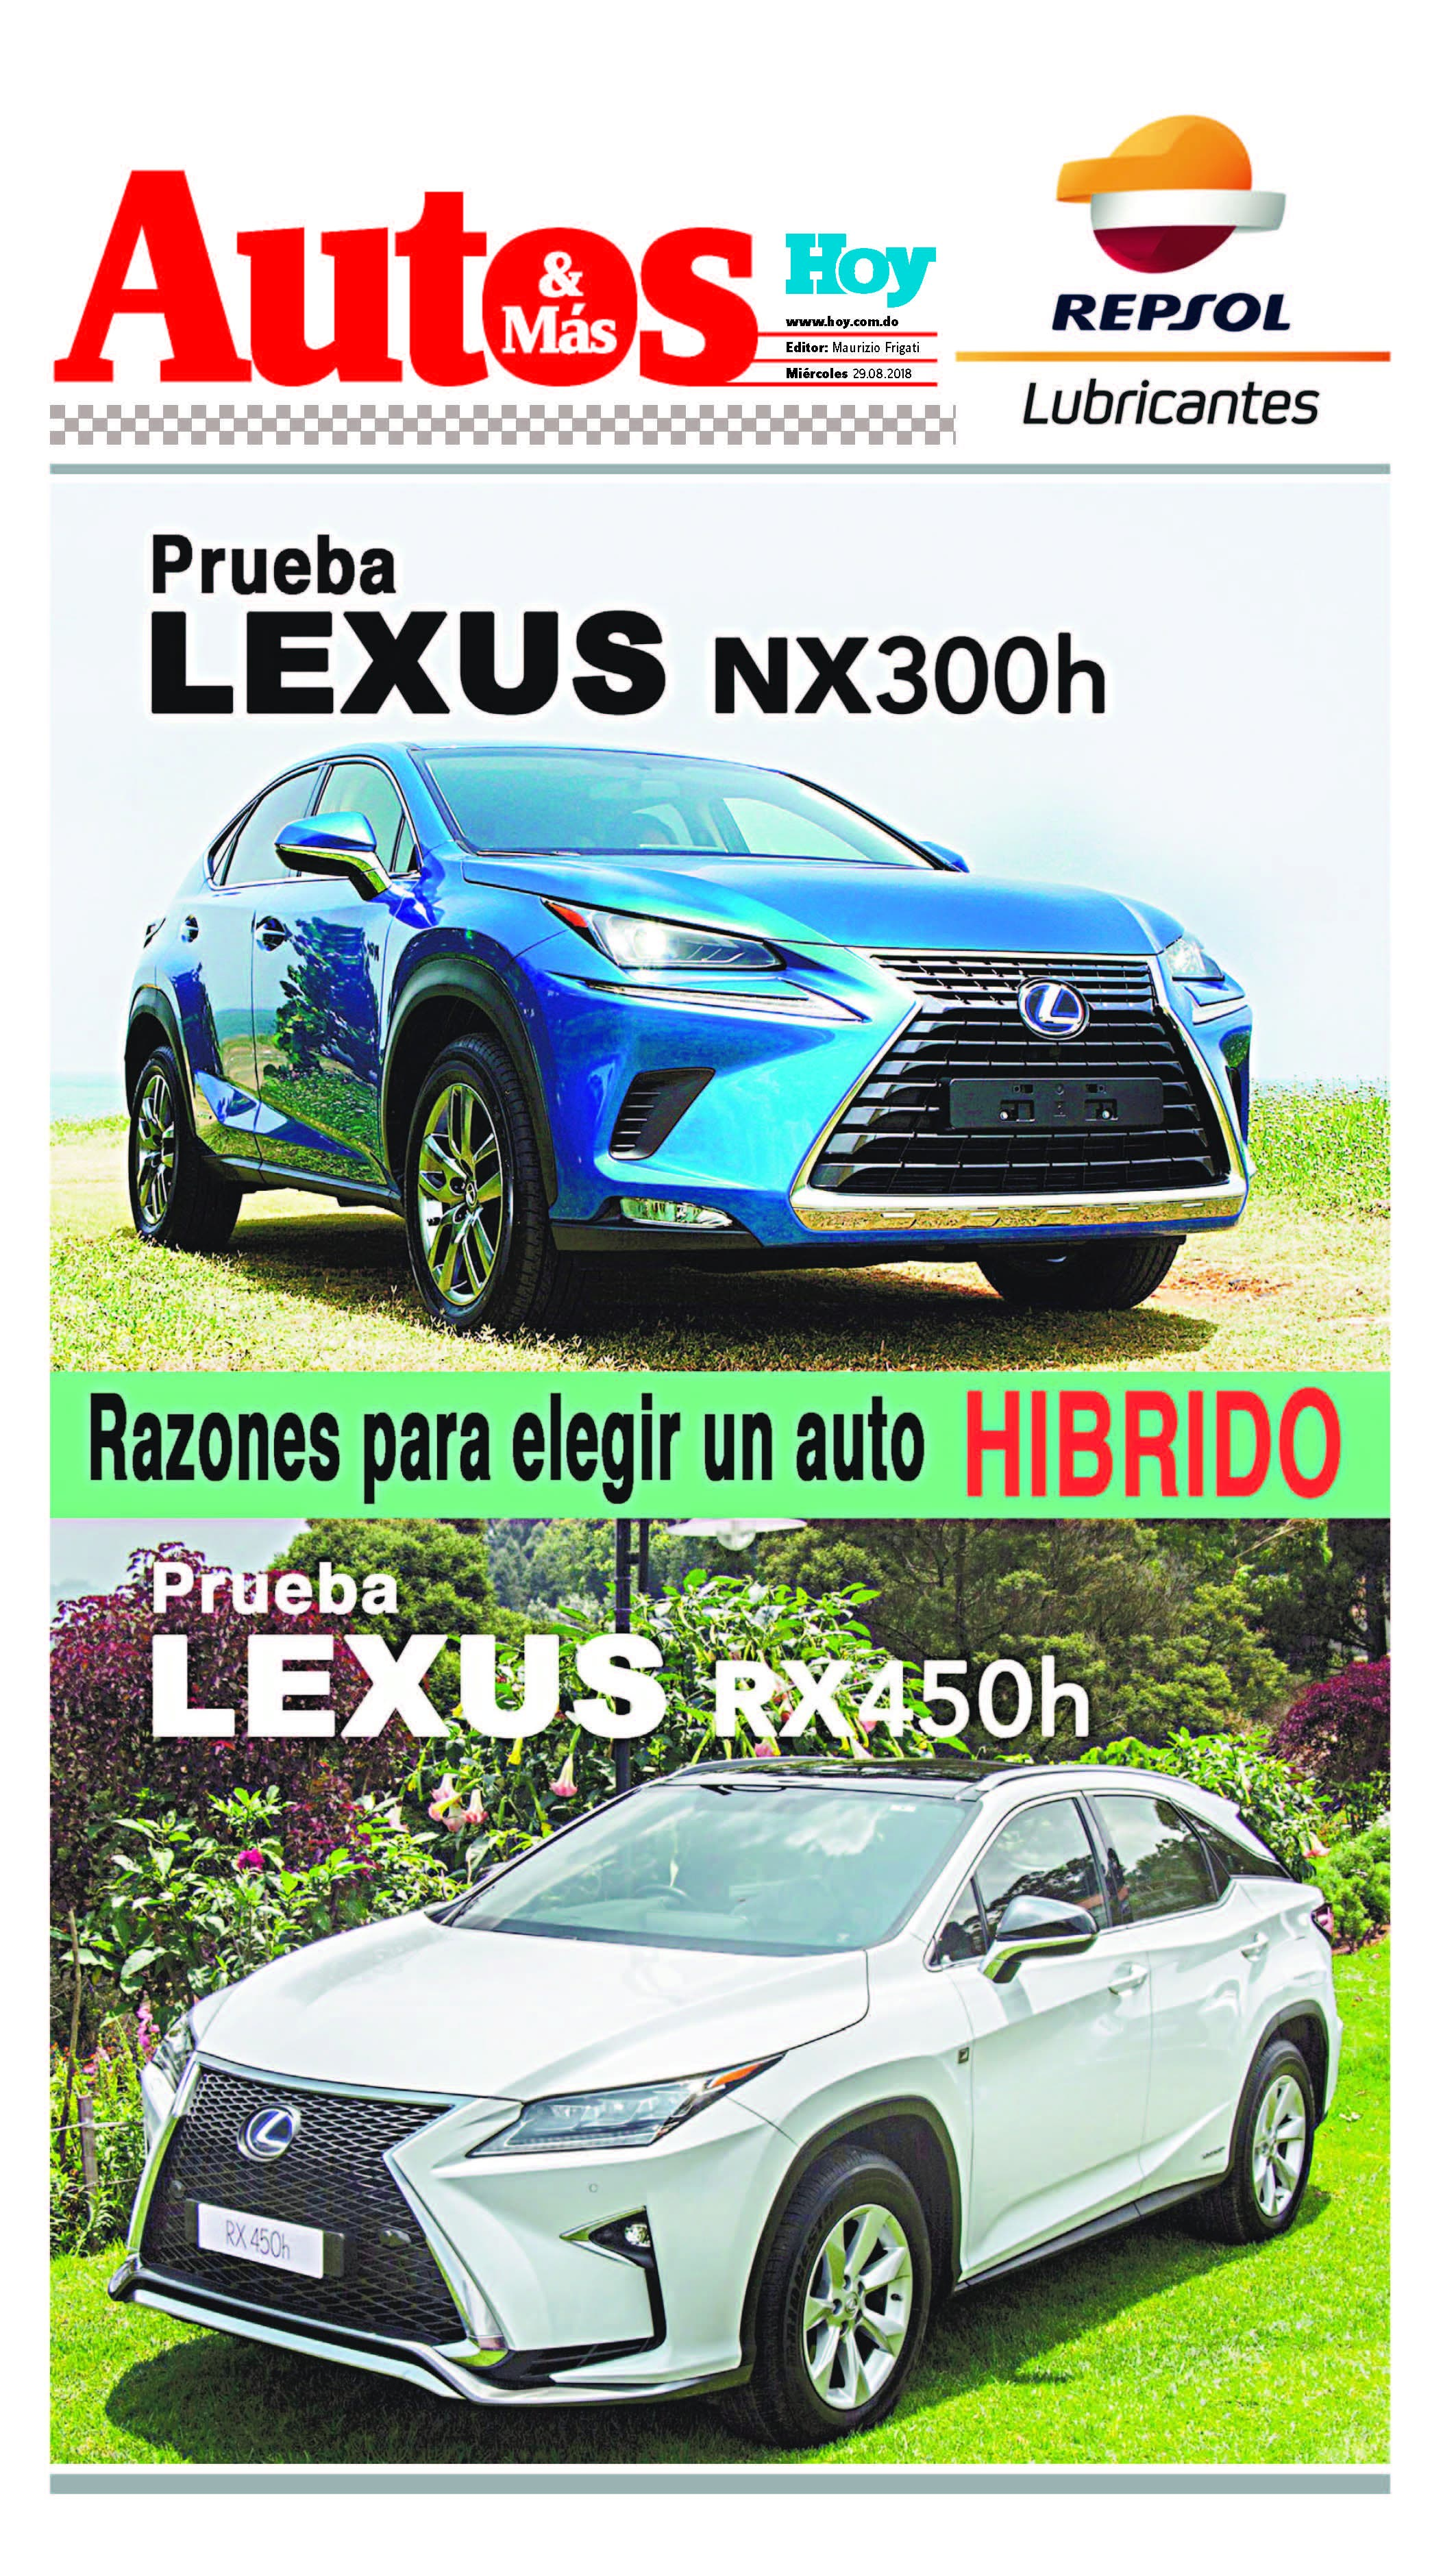 Pages from Autos y Mas. Miércoles 29 de agosto del 2018